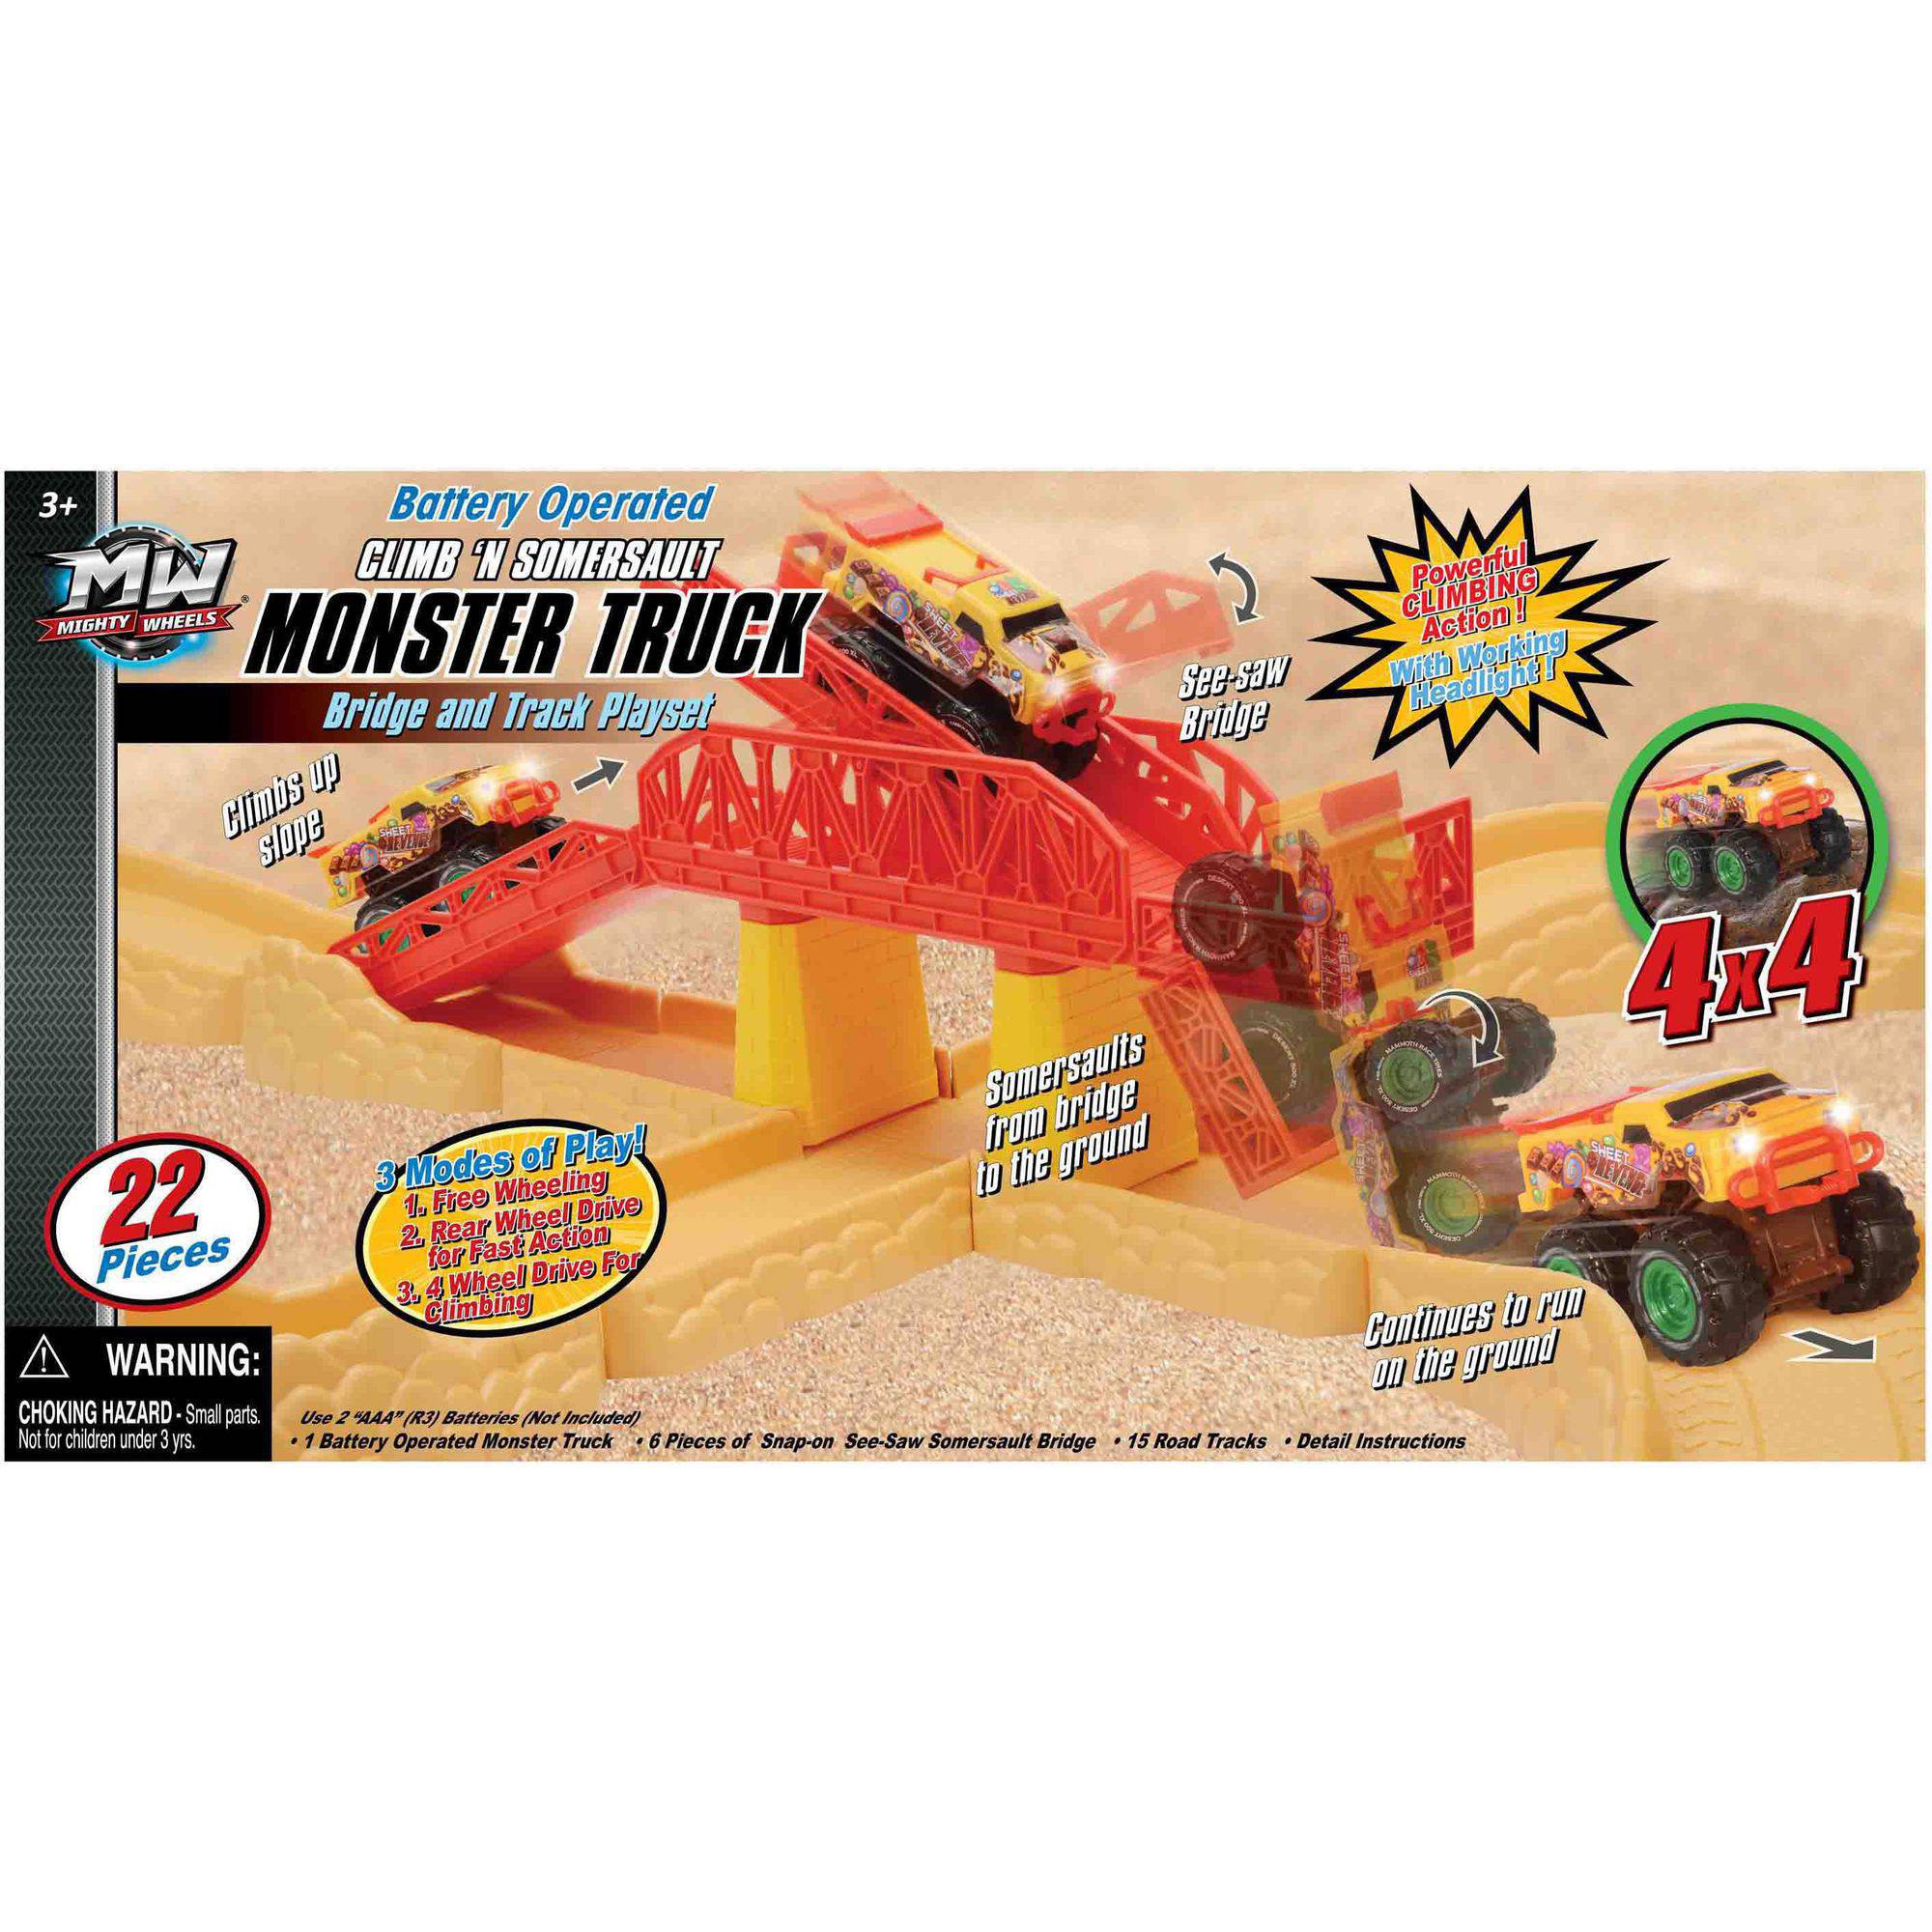 Battery Operated Monster Truck Somersault Bridge and Tracks Set